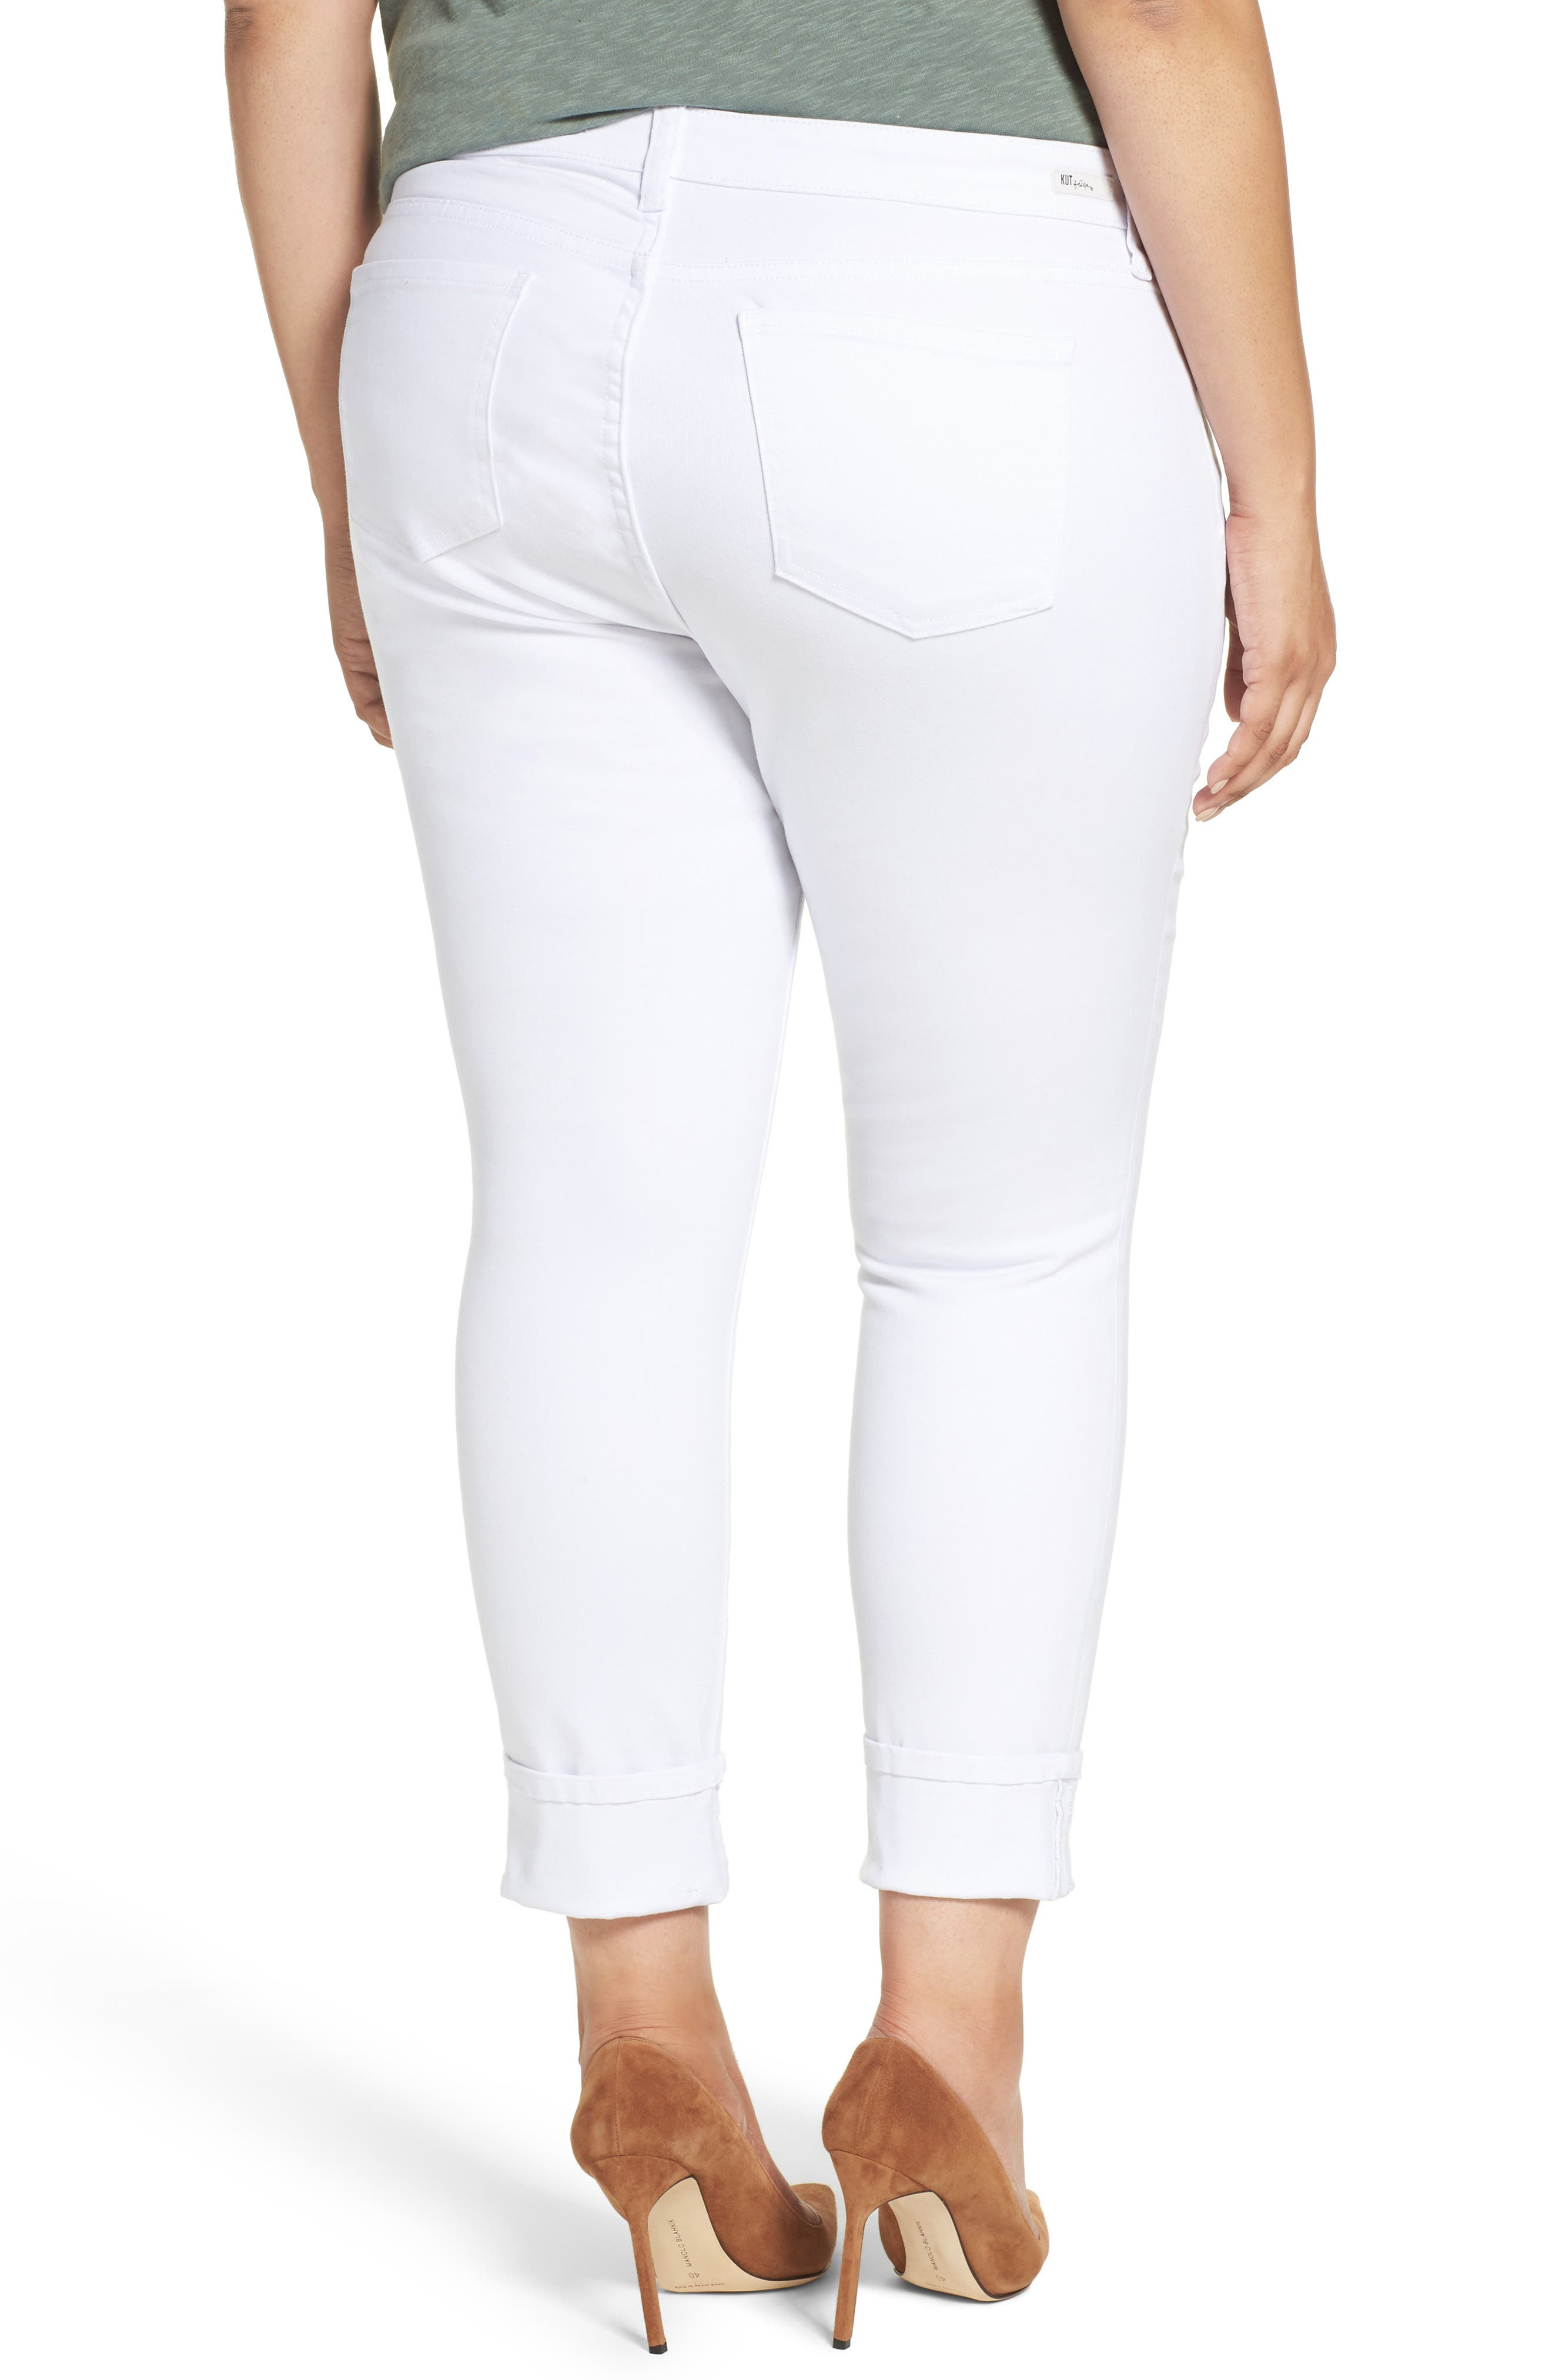 Alternate Image 2  - KUT from the Kloth Catherine Distressed Wide Cuff Boyfriend Jeans (Optic White) (Plus Size)